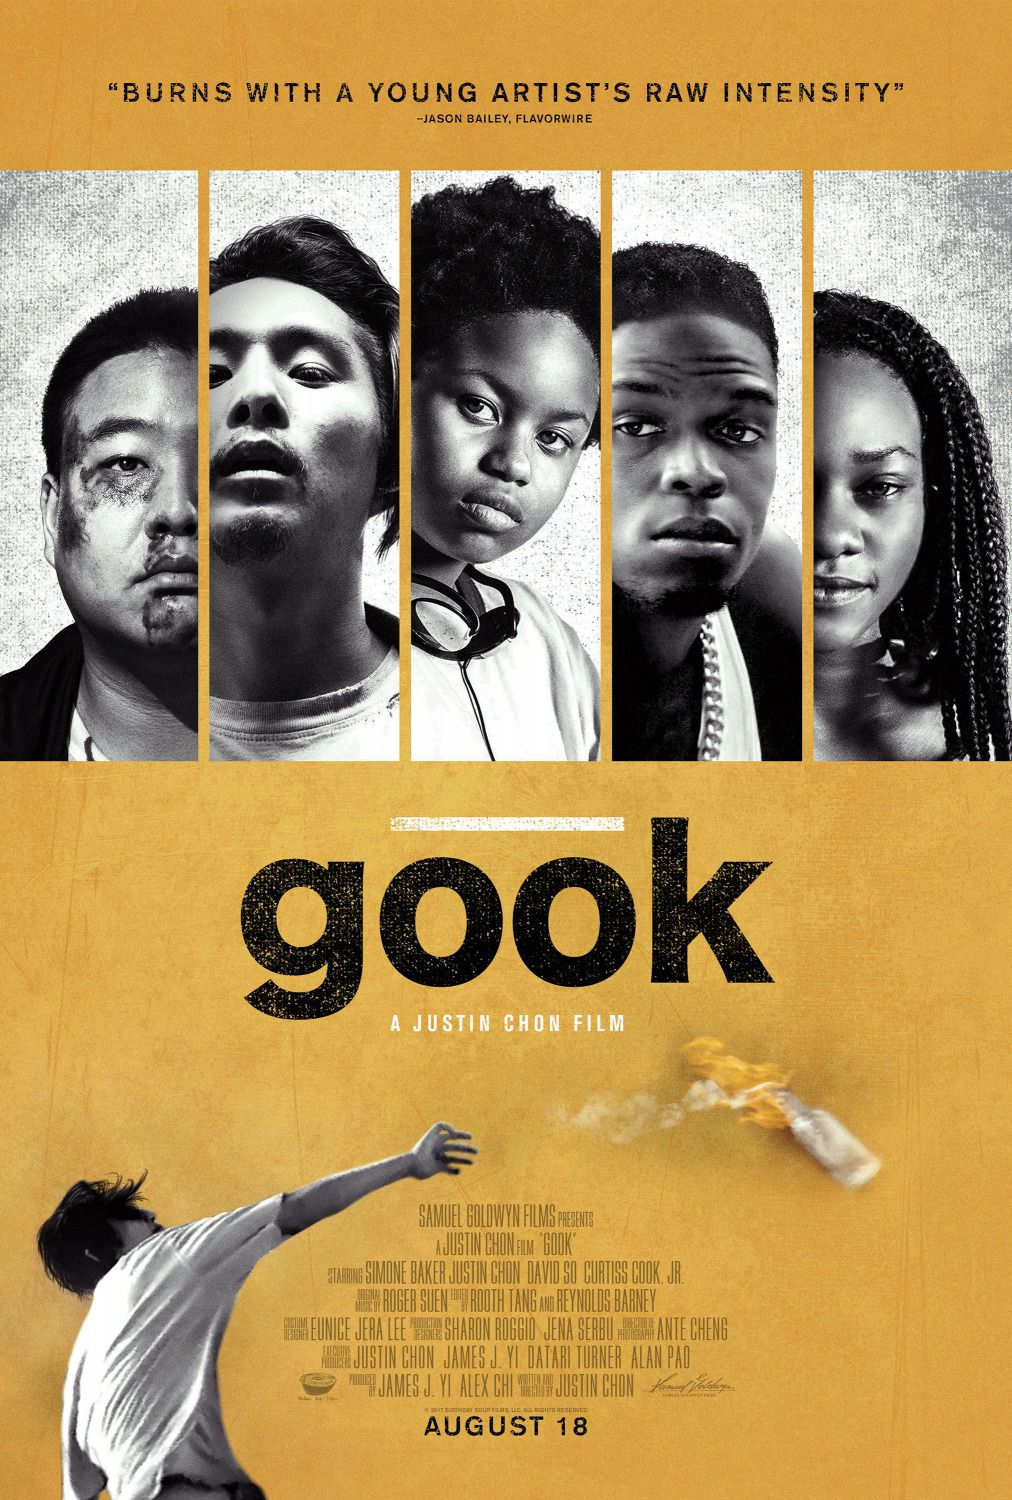 Gook - burns with a young artist's raw intensity - a Justin Chon film with Simone Baker - David So - Curtis Cook Jr - poster